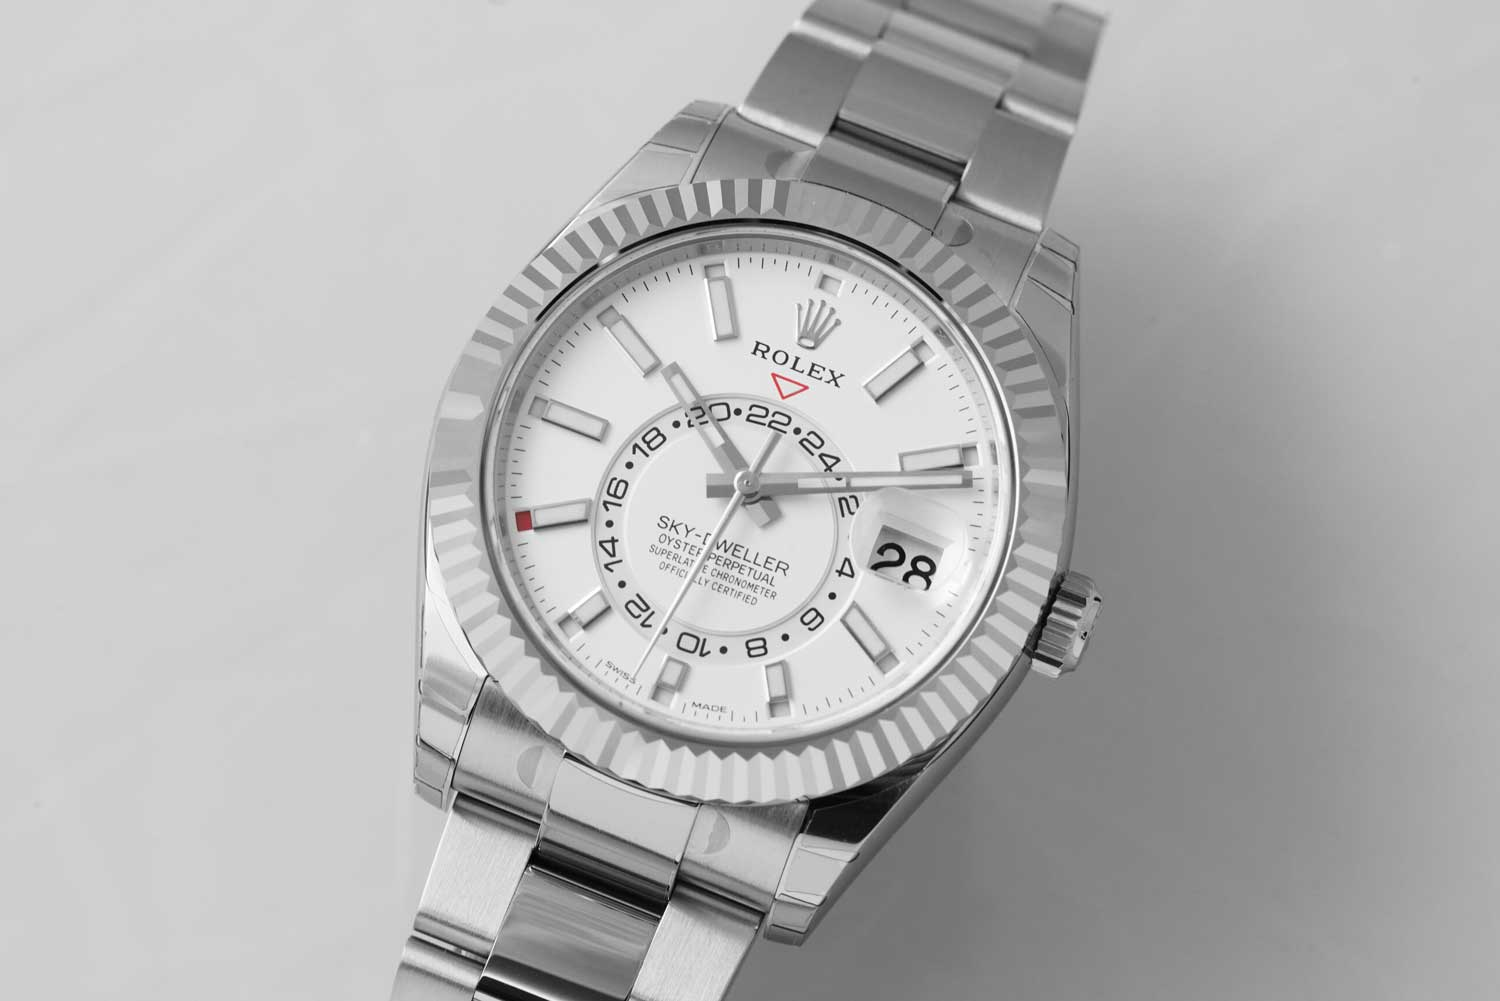 The Oyster Perpetual Sky-Dweller (Reference 326934) in White Rolesor with an intense white dial and an Oyster bracelet (©Revolution)